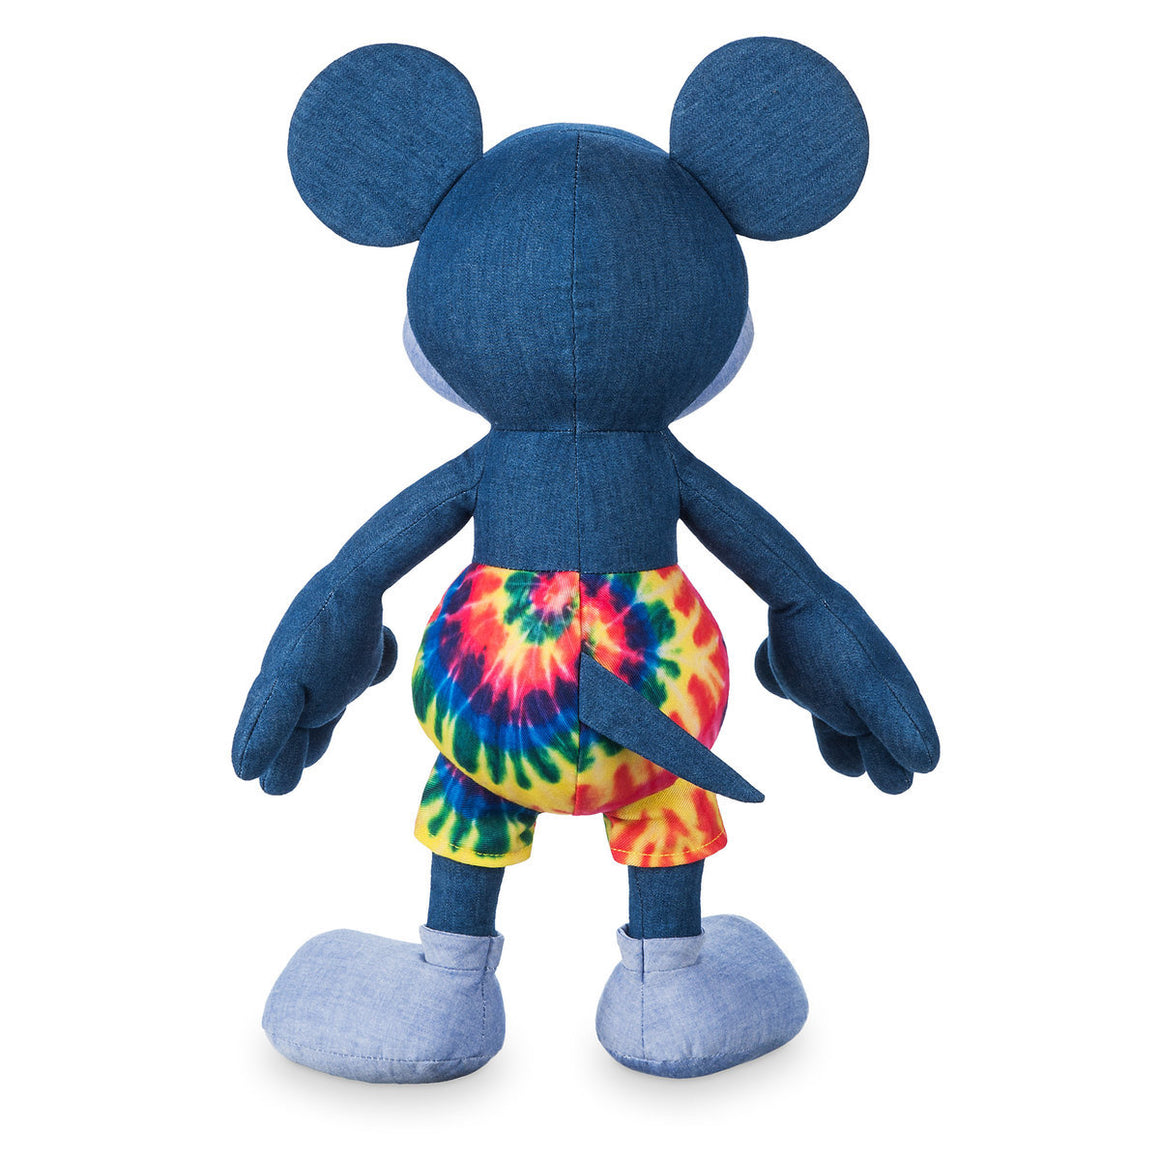 Mickey Mouse Memories Plush - June 2018 - Limited Edition